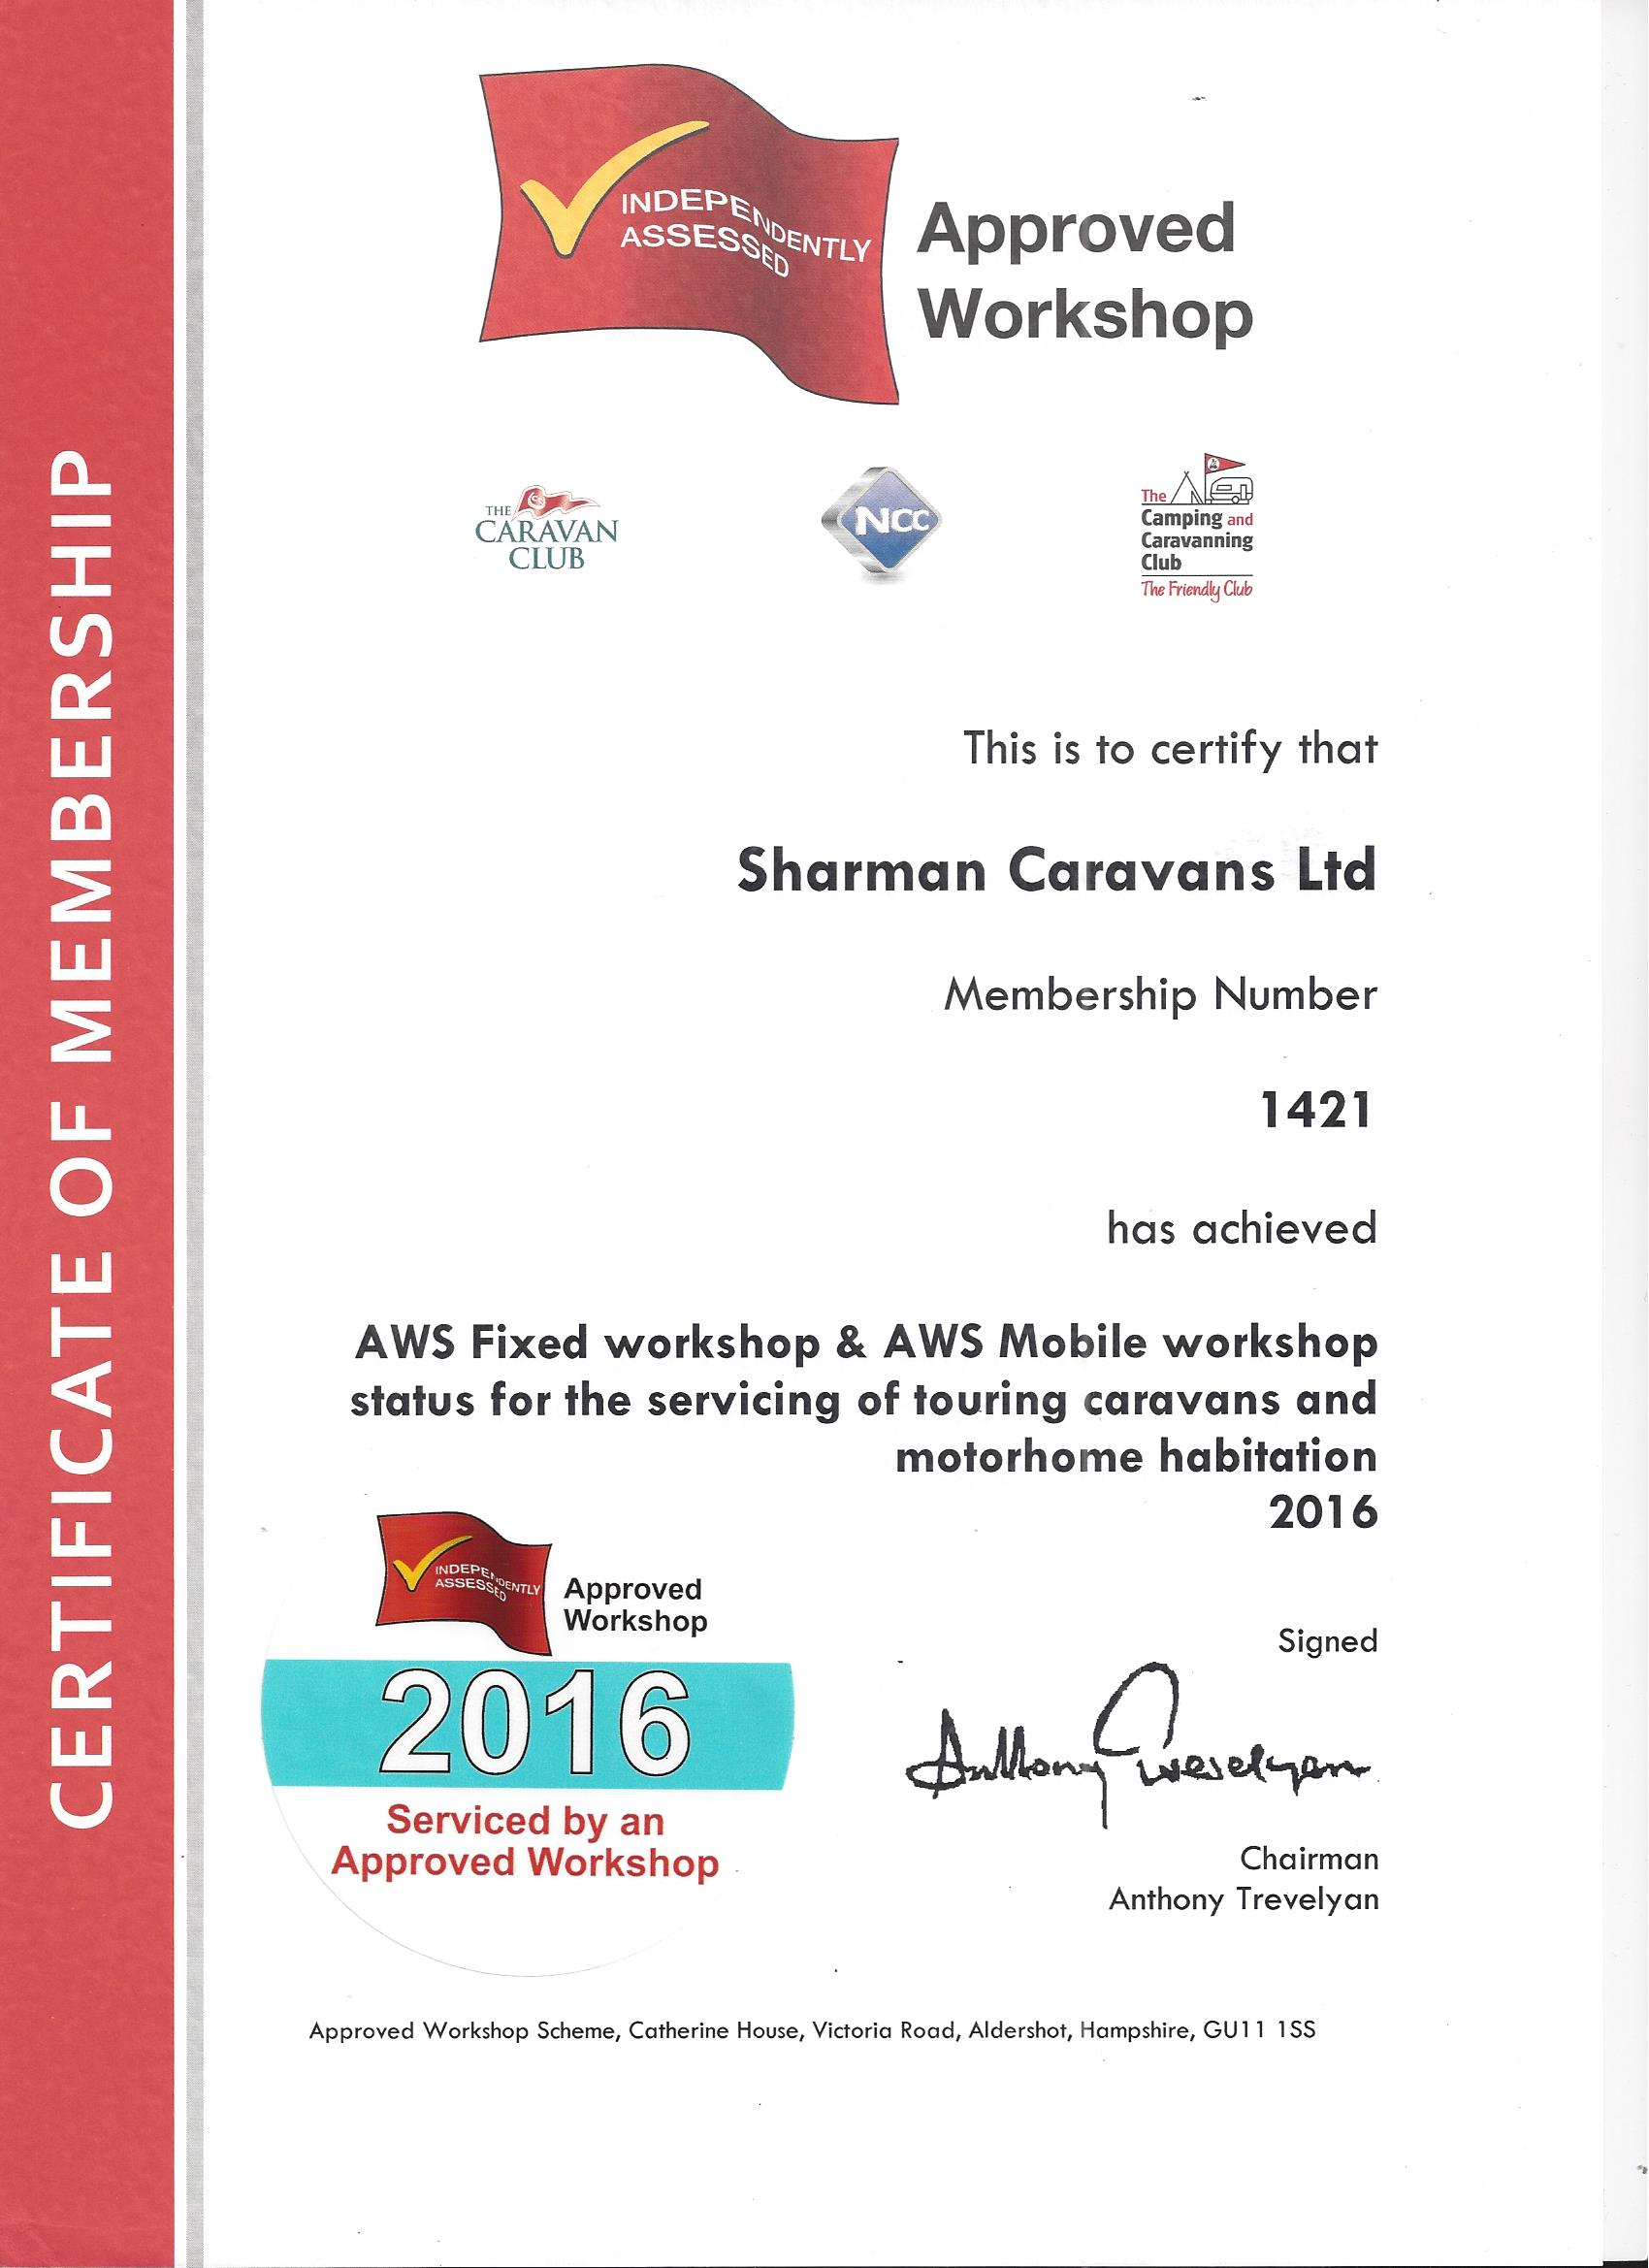 AWS approved Mobile and Fixed Workshop